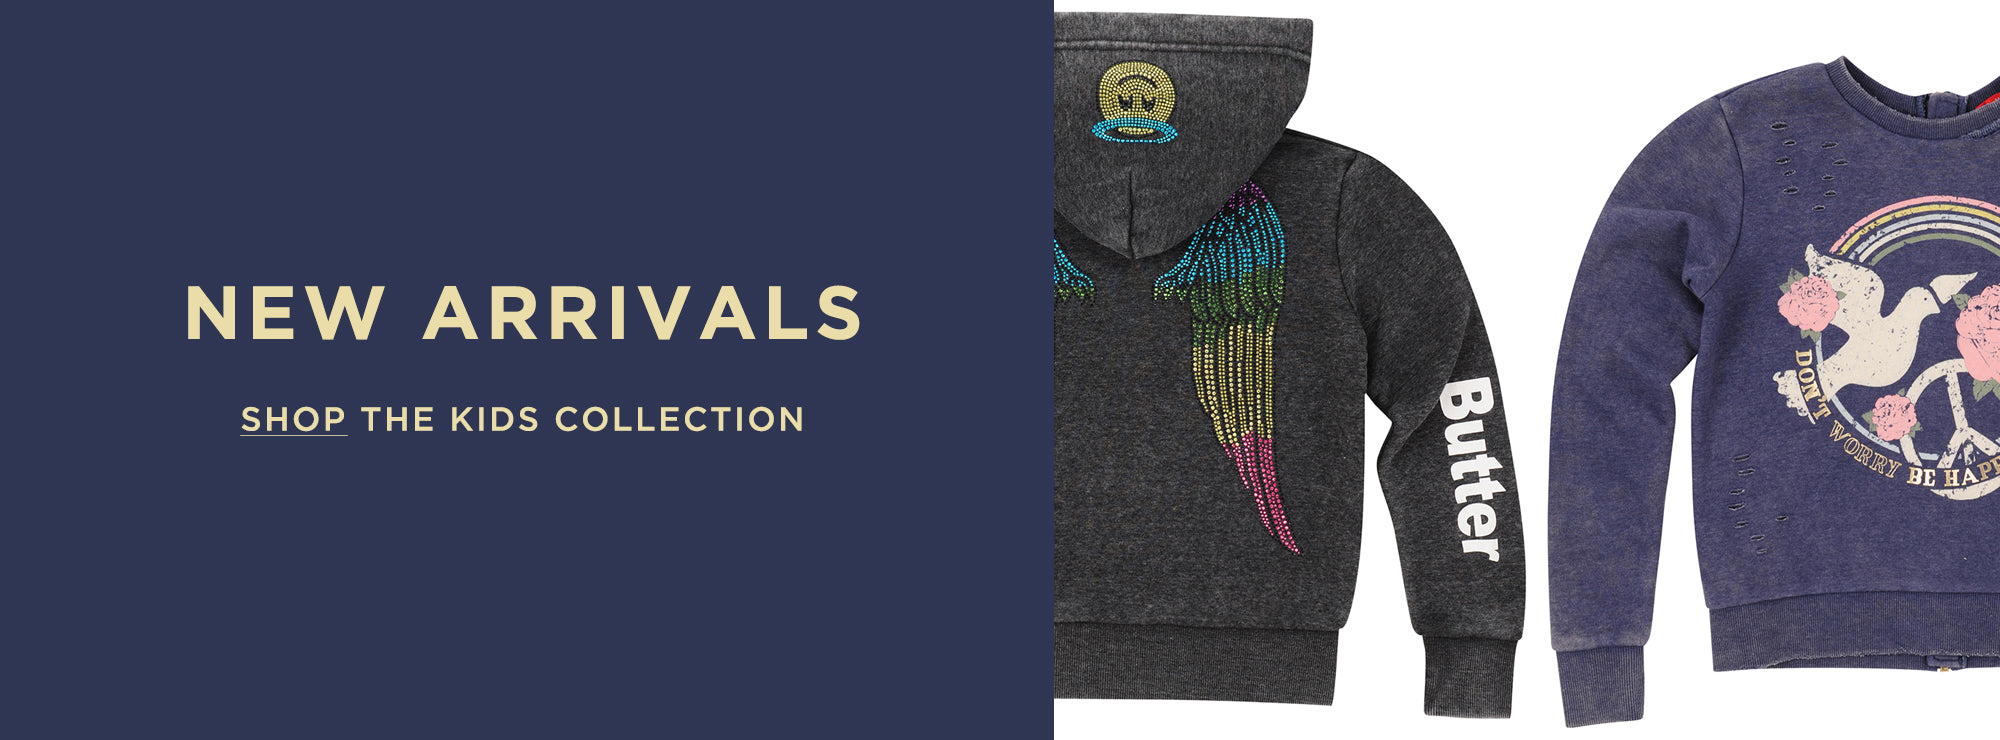 Fall new arrivals are here! Shop the latest collection.